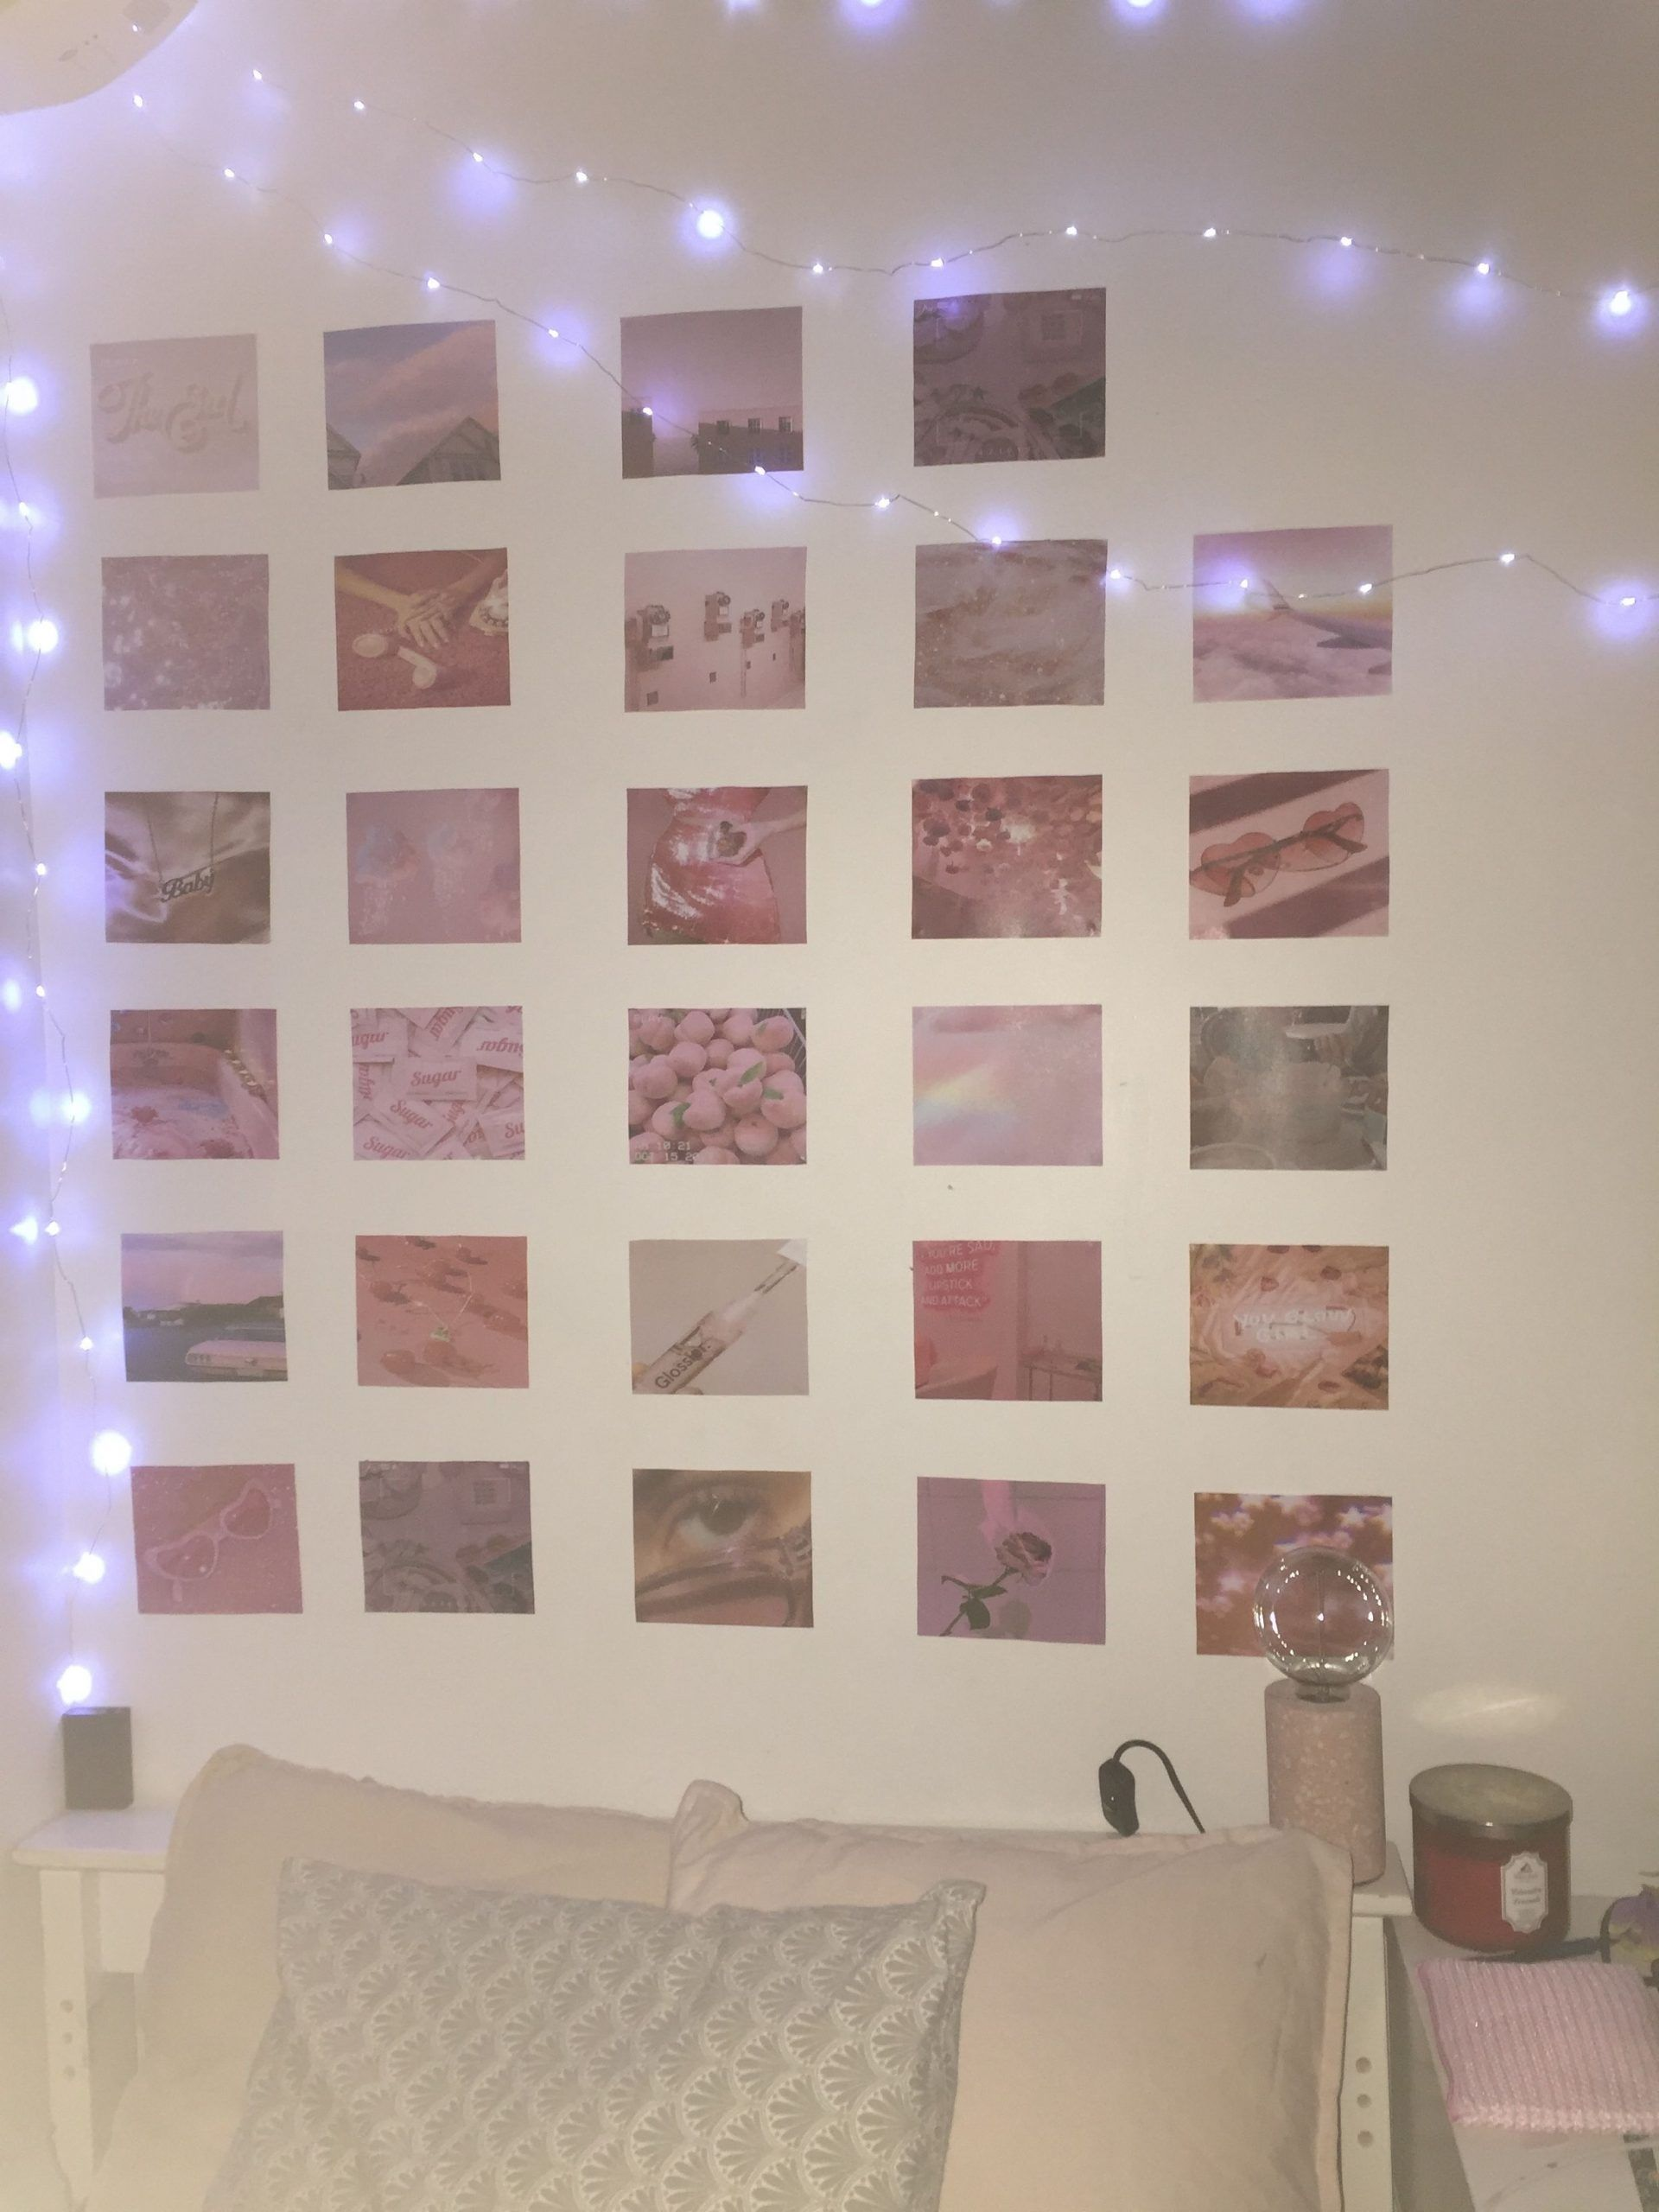 Aesthetic Images For Wall